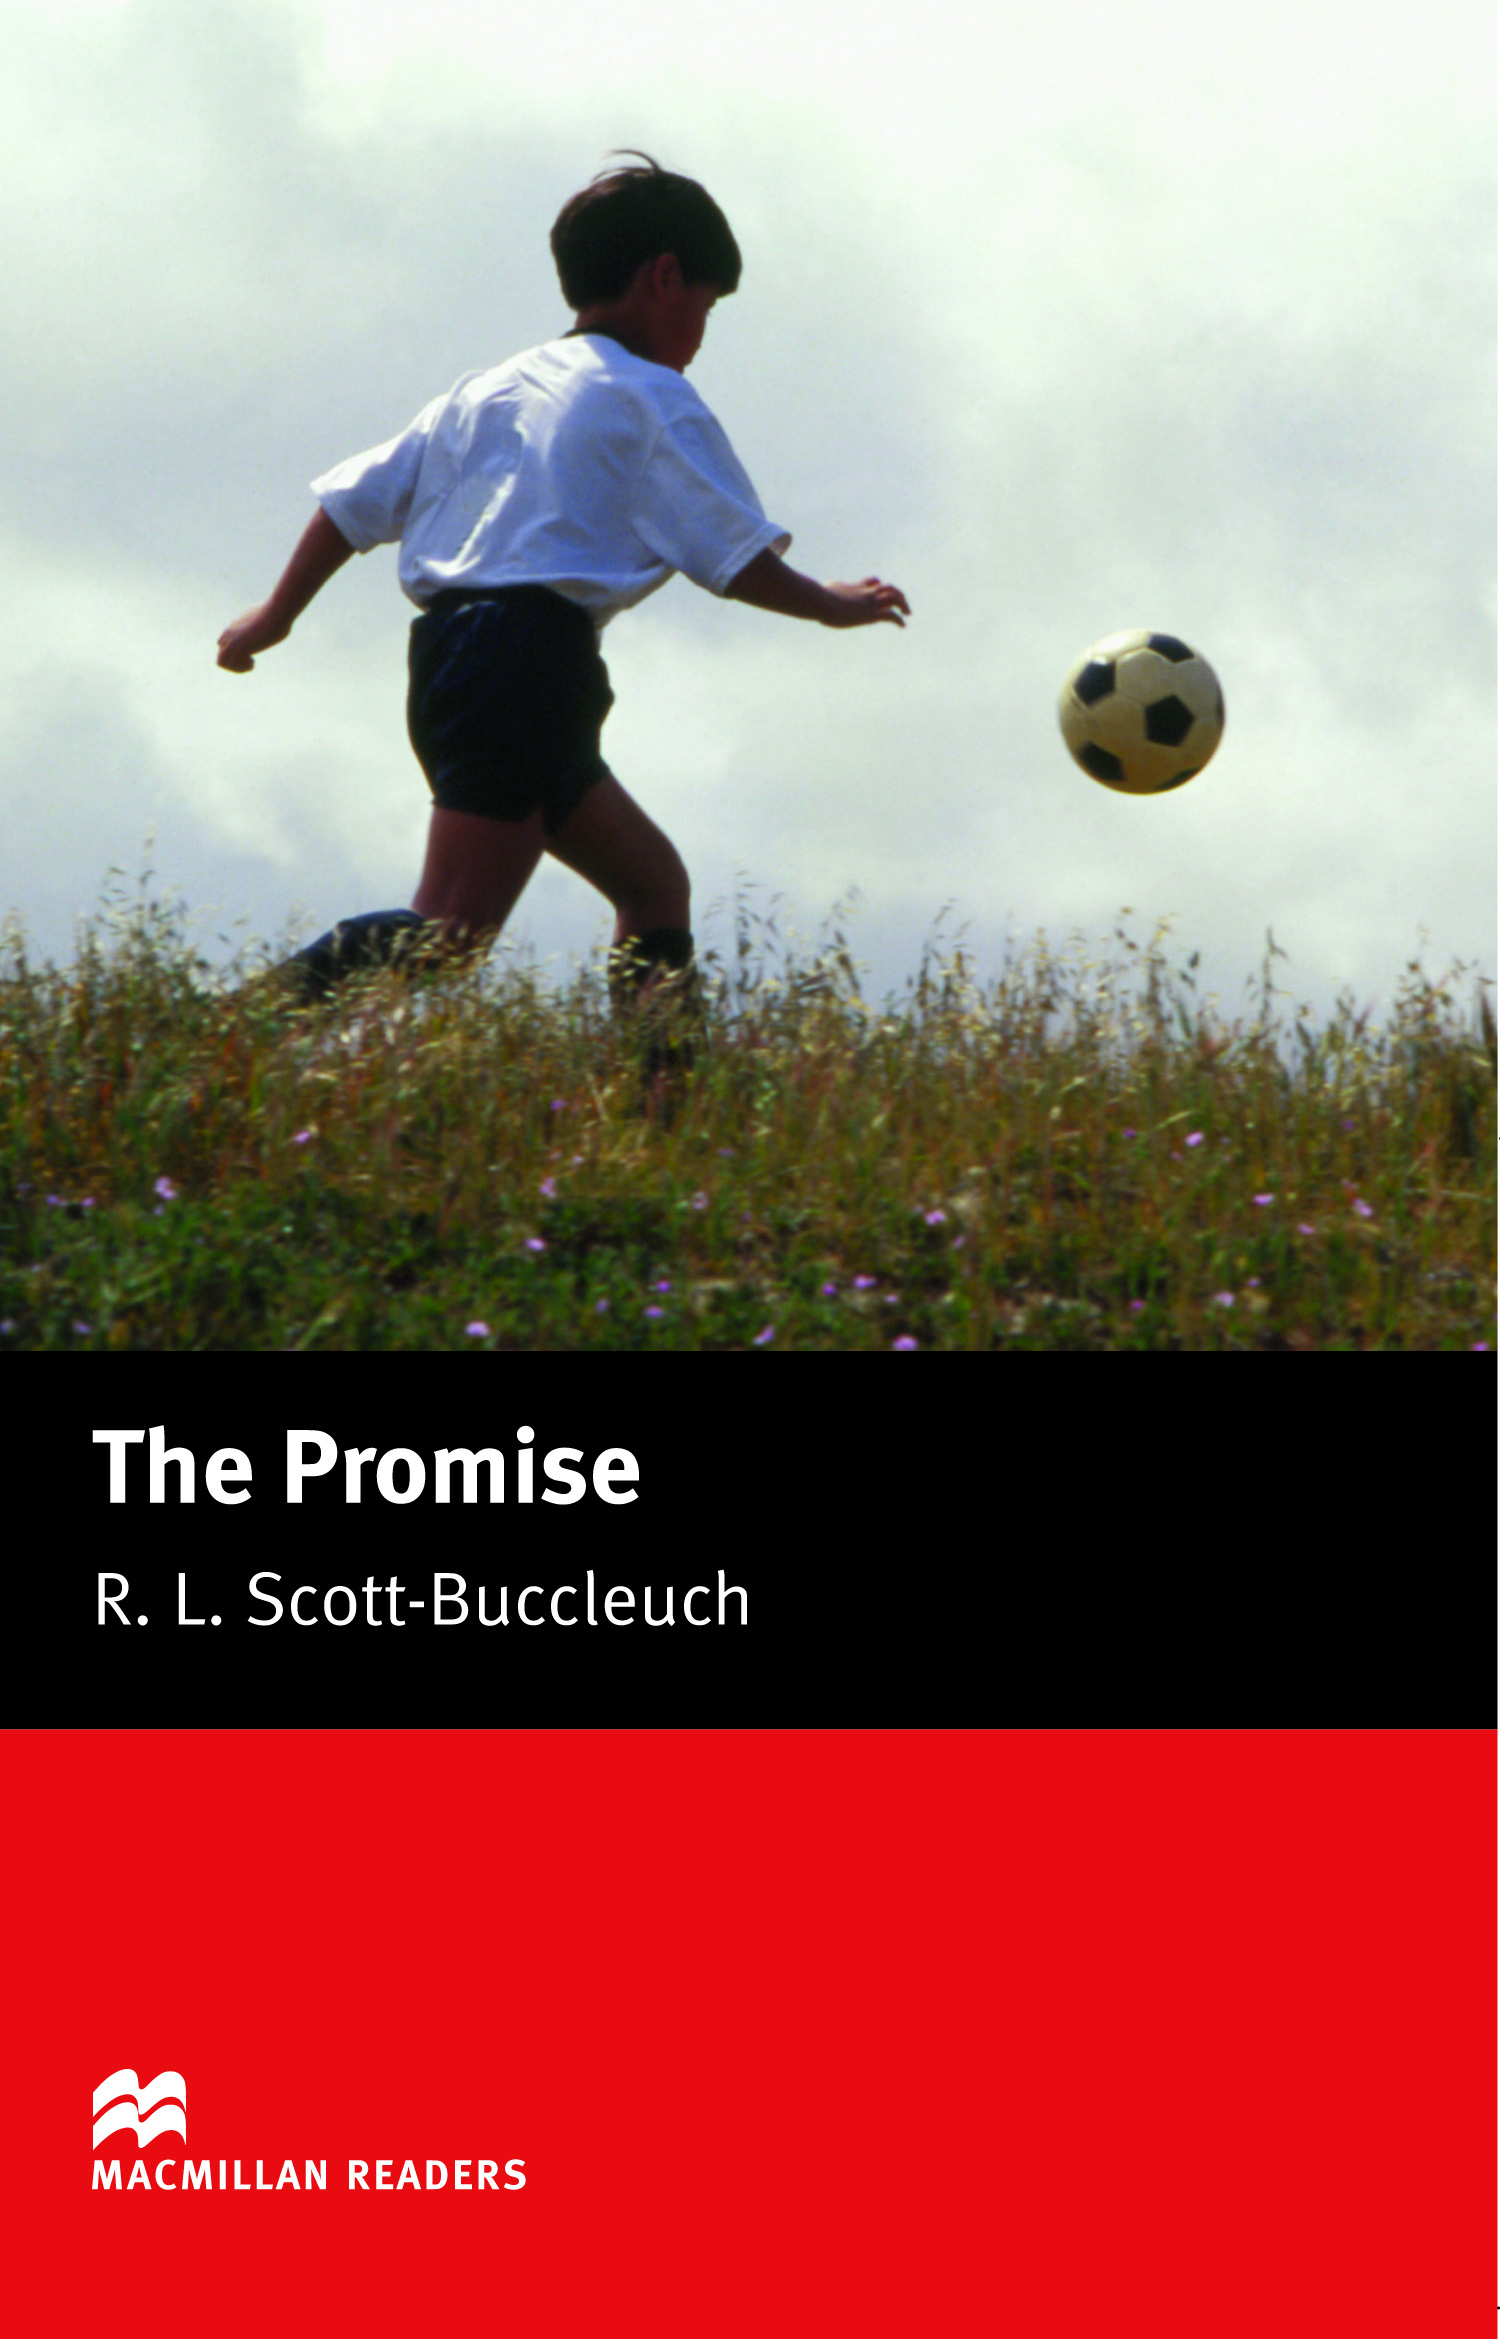 Macmillan Readers: The Promise